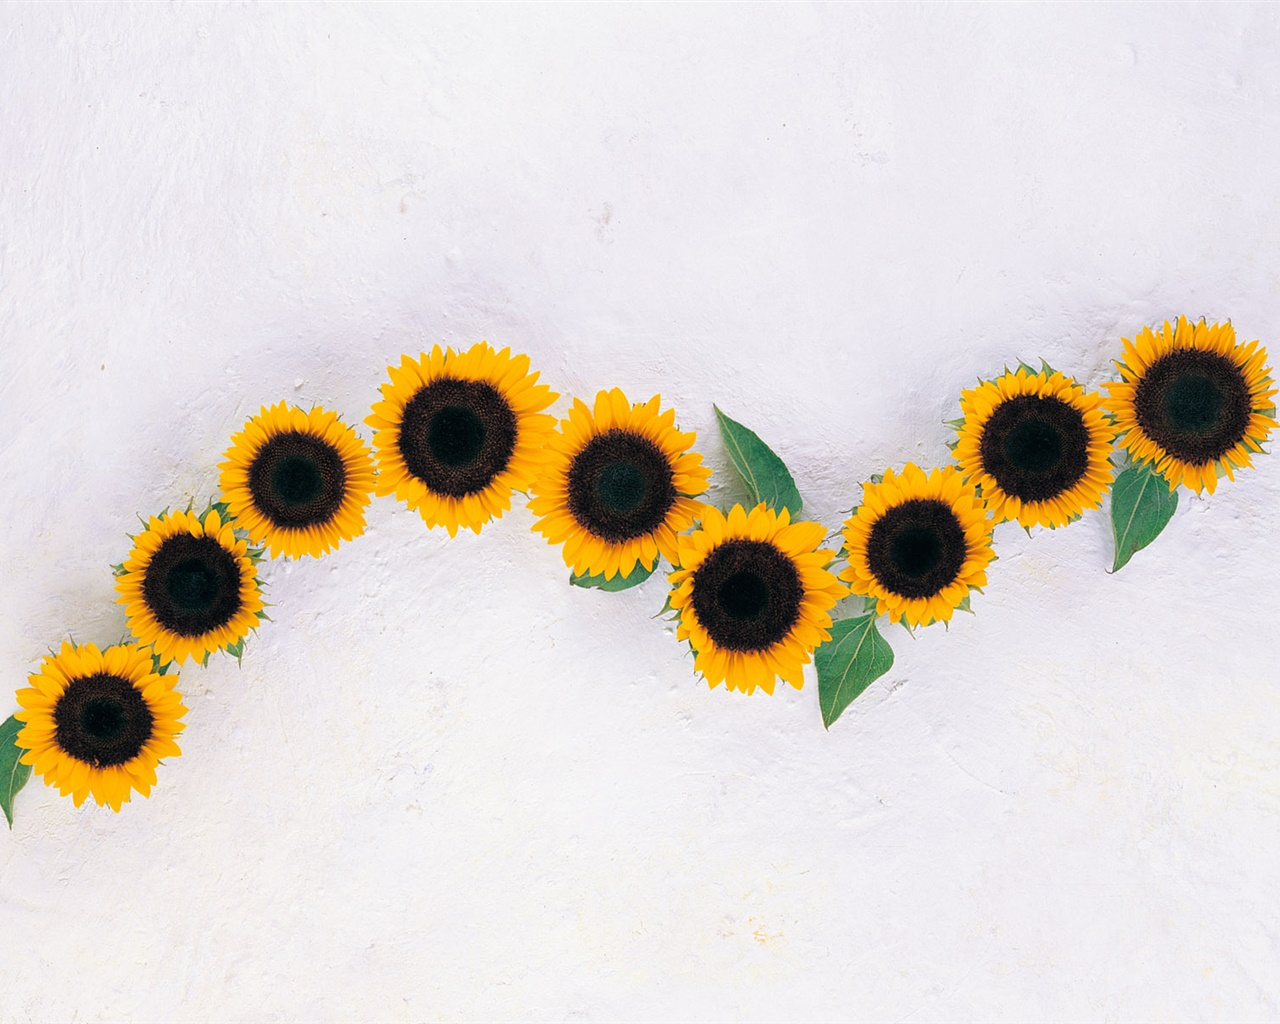 Sunflowers, white background 1280x1024 wallpaper